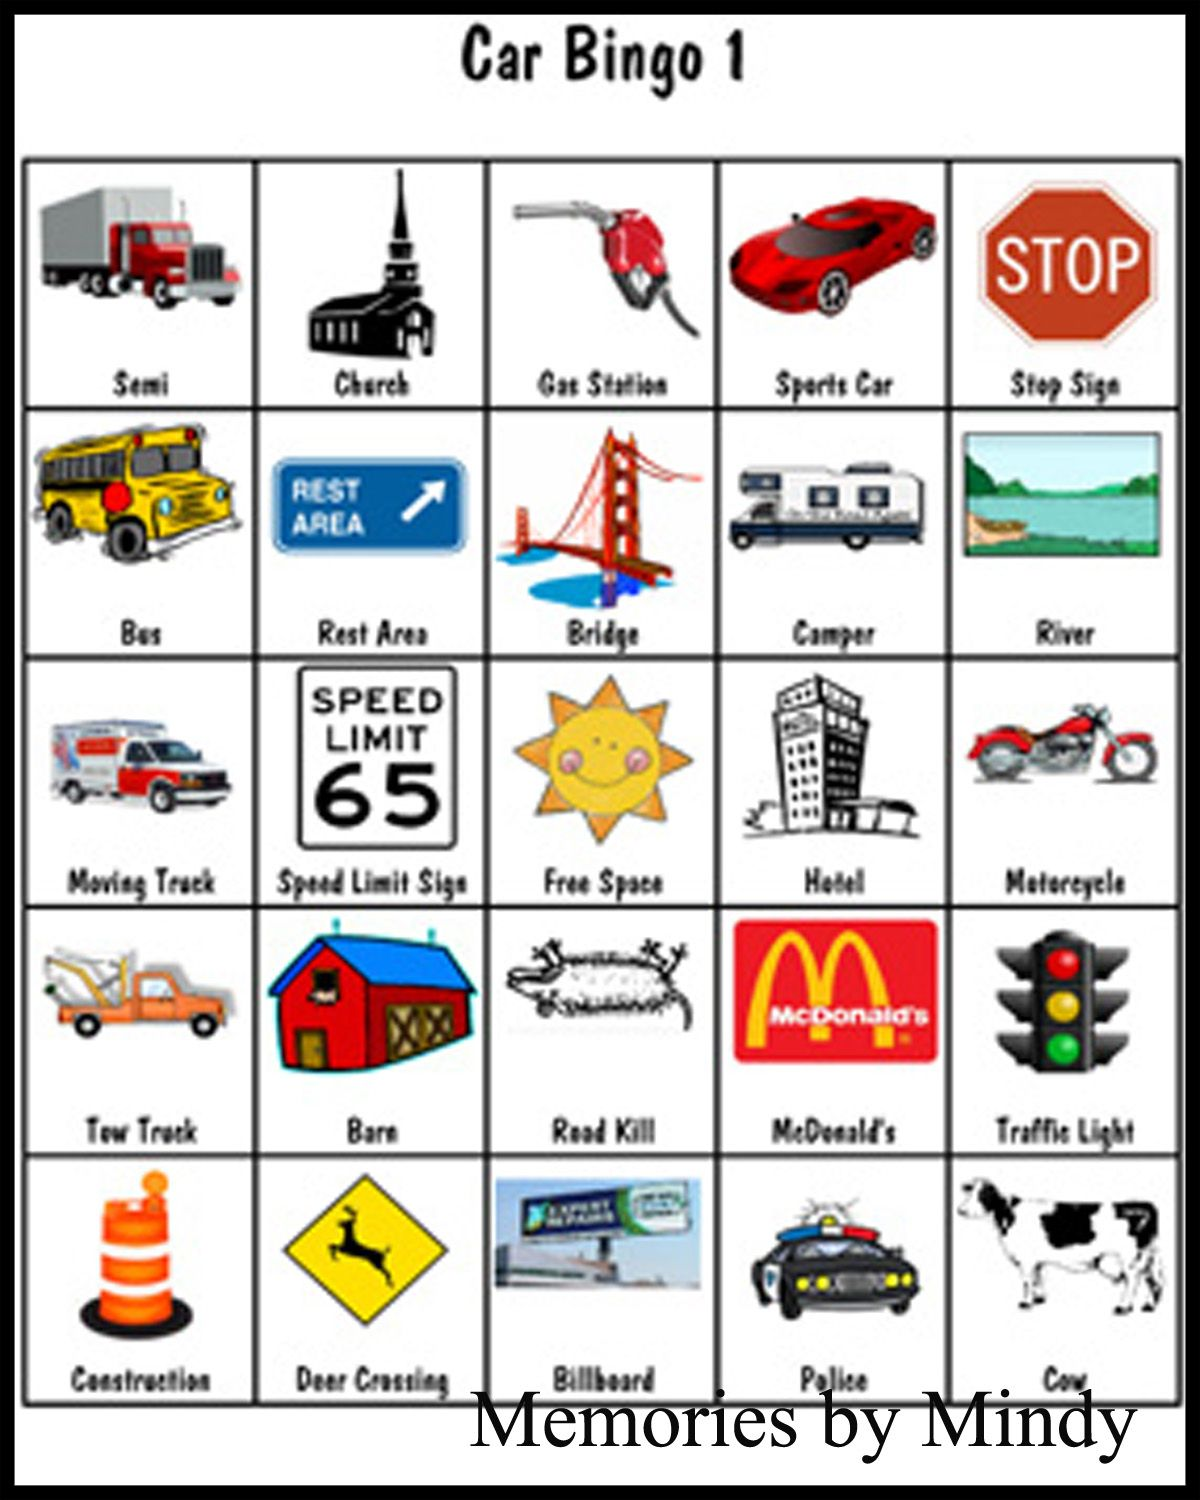 This is a picture of Dashing Car Bingo Cards